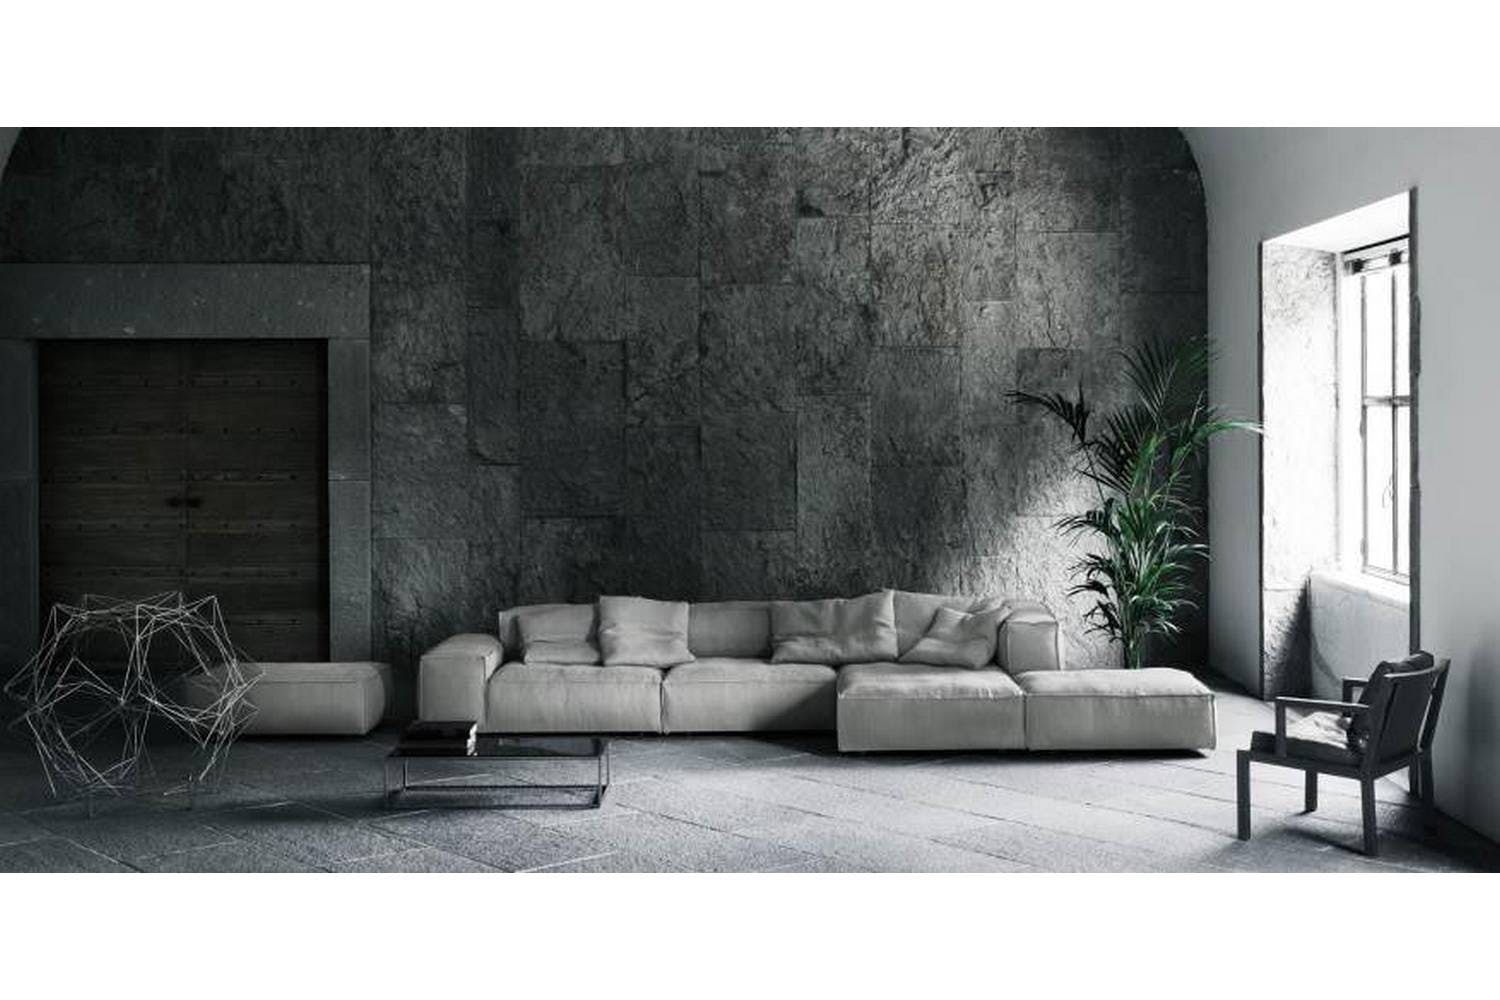 neowall sofa by piero lissoni for living divani space. Black Bedroom Furniture Sets. Home Design Ideas